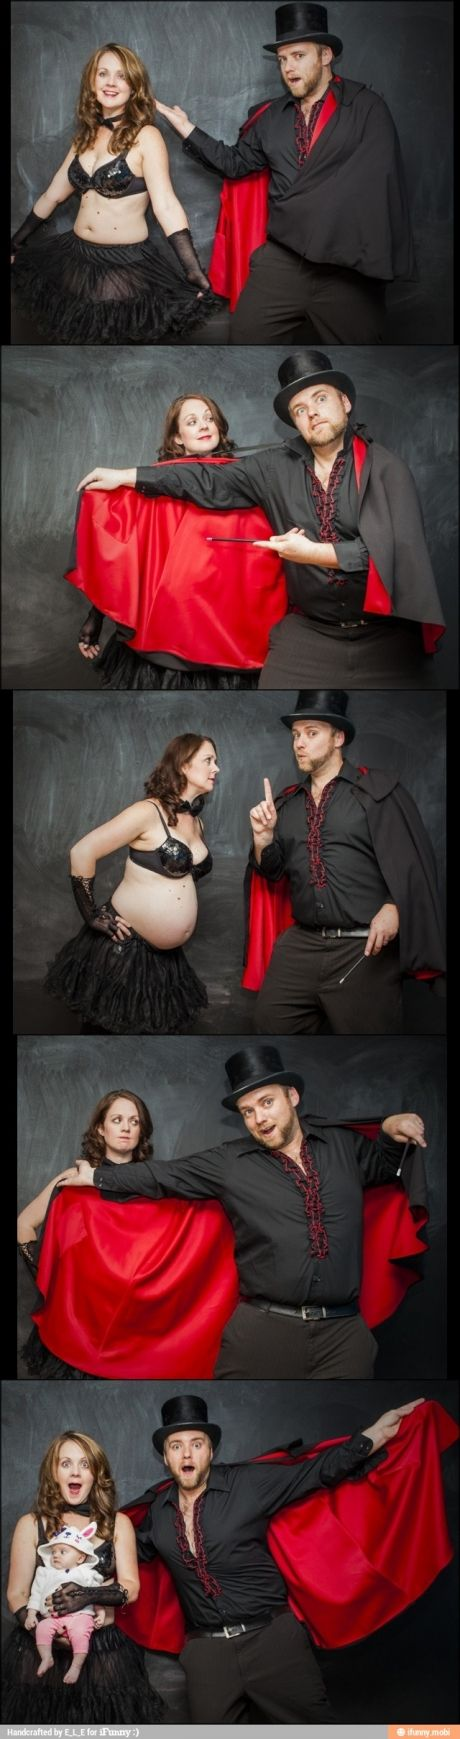 This is how pregnancy works, right?  --  I'm not usually big on cheesy pregnancy pictures, but these are actually pretty cute!